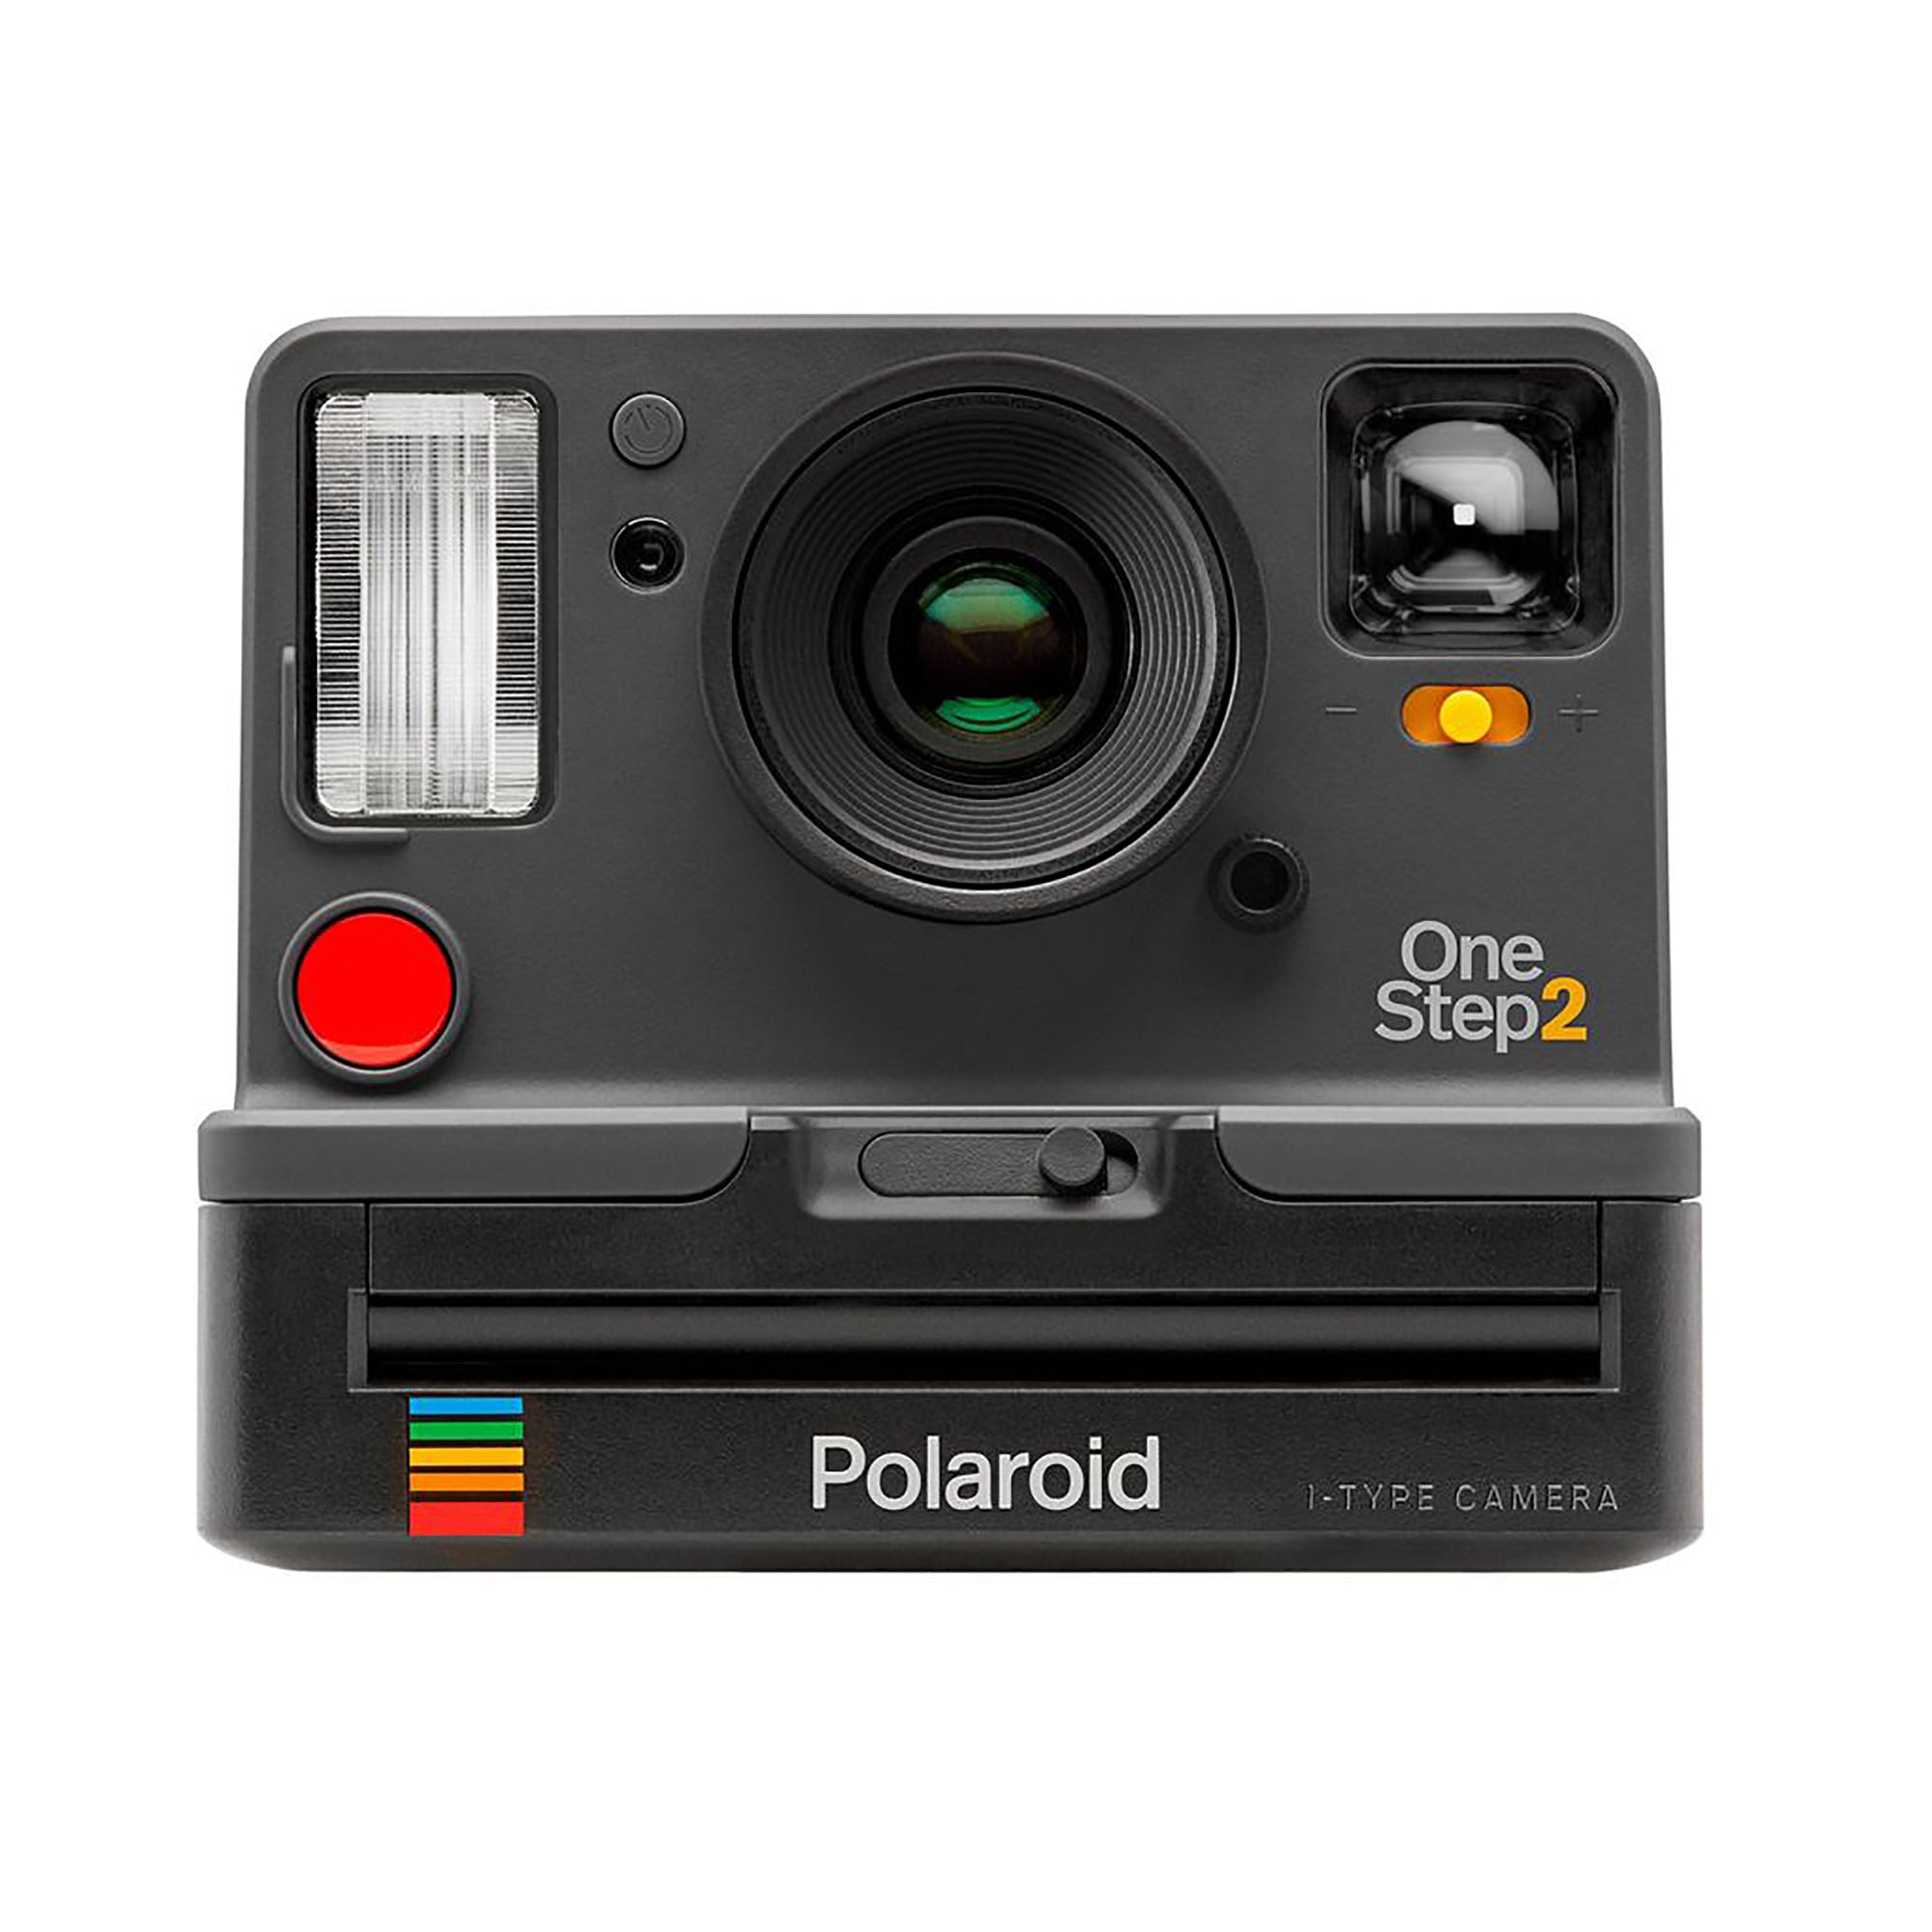 Polaroid One Step 2 Viewfinder i-Type Camera-Graphite | Getty Store